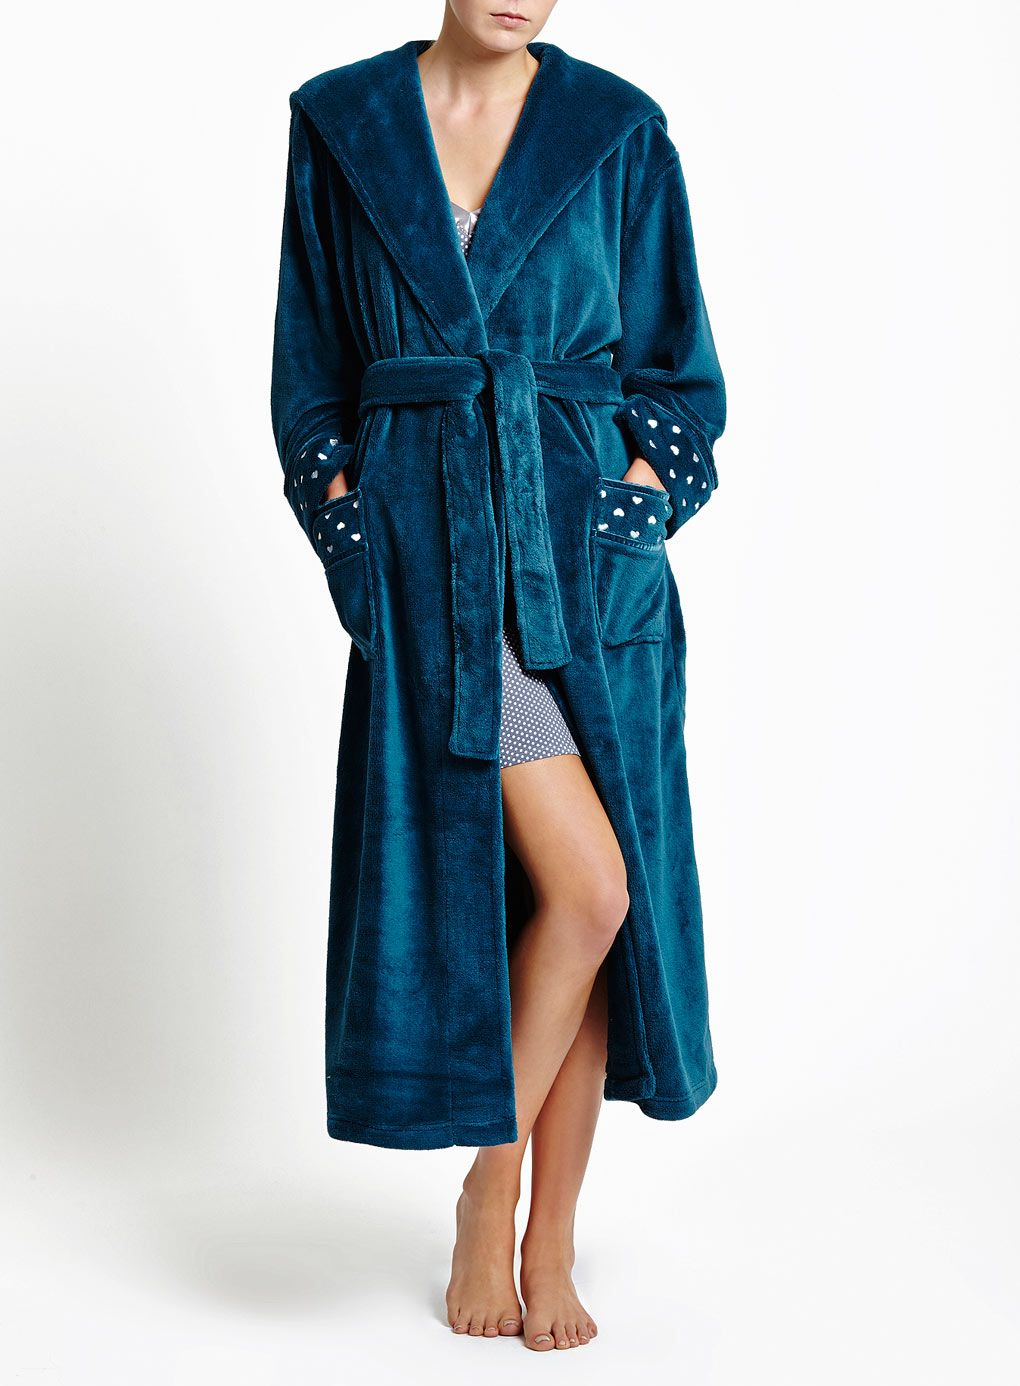 Old Fashioned Bhs Dressing Gowns Adornment - Wedding and flowers ...